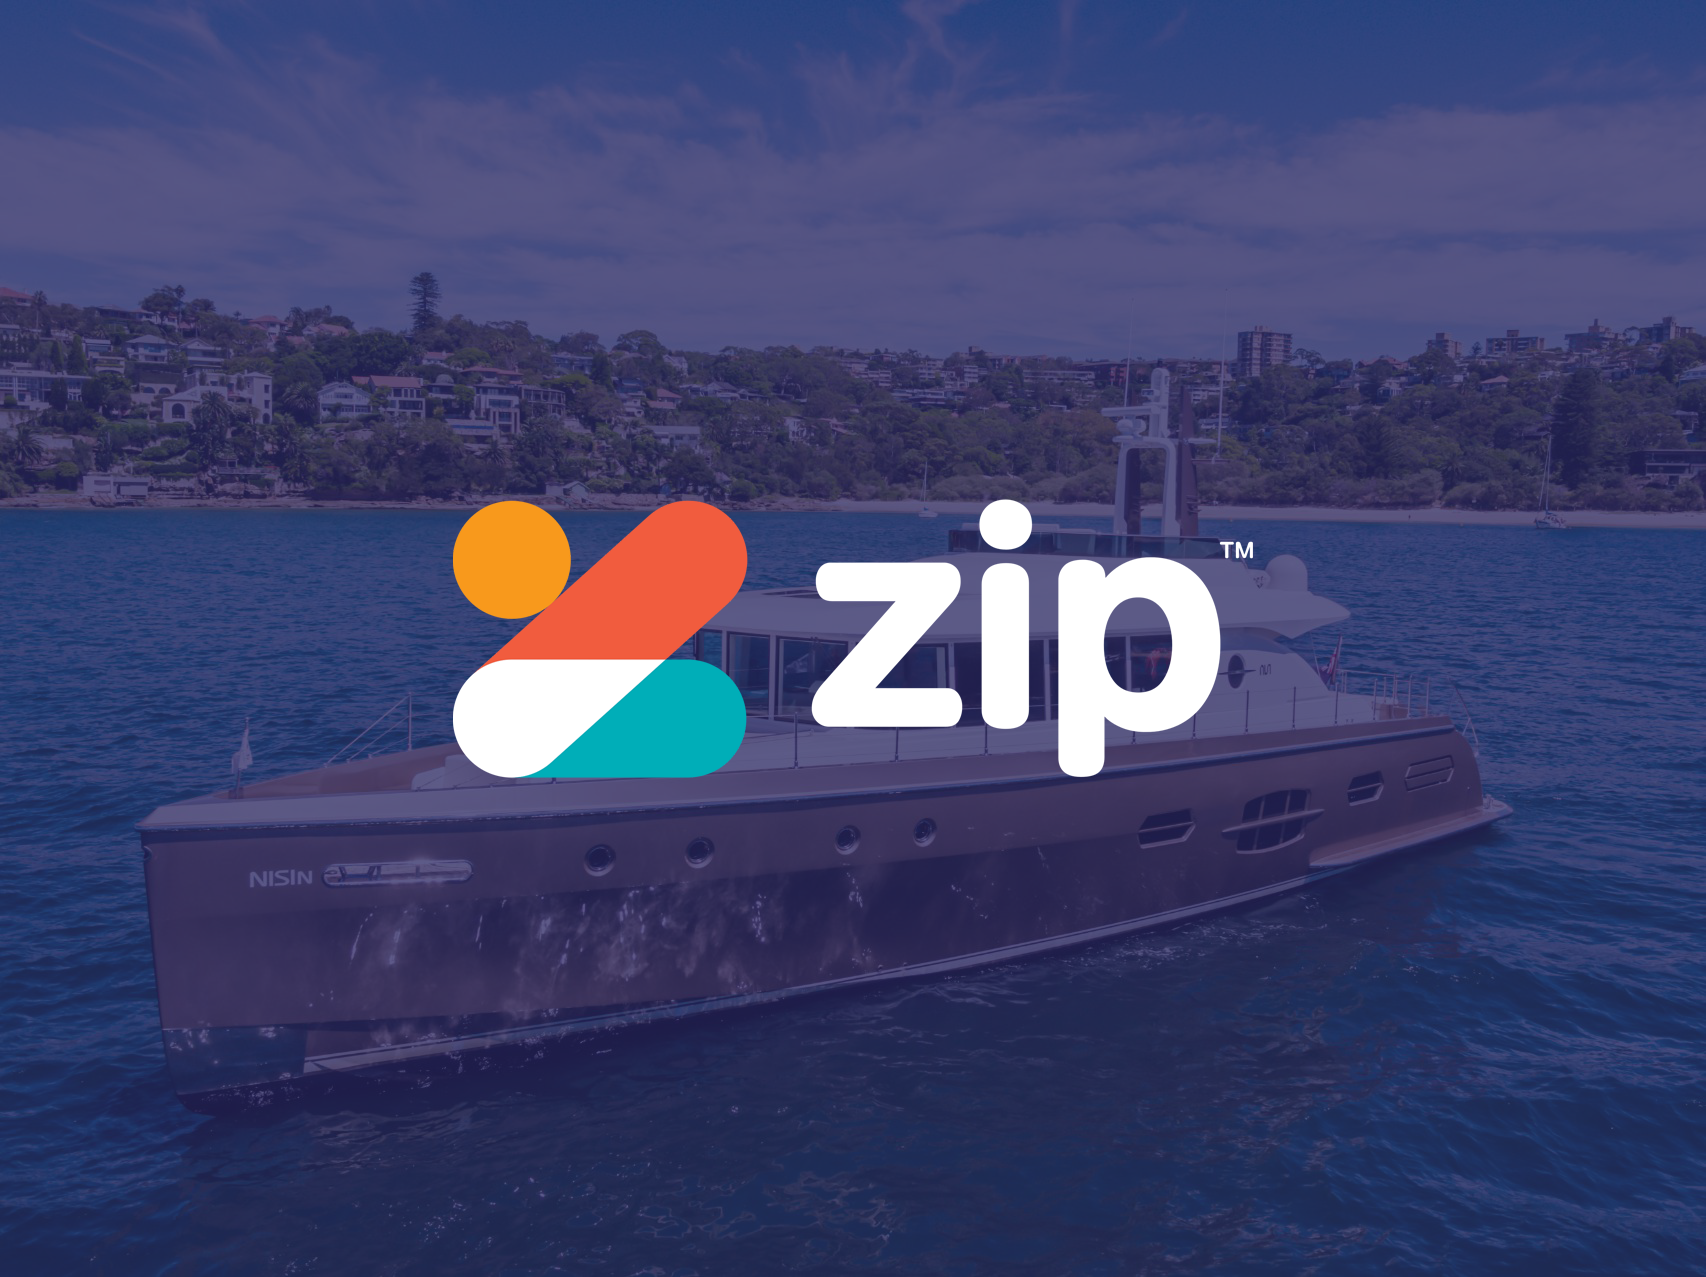 Book a boat today, interest free and pay later with Zip - Flotespace accepts Zip Money, so you can secure your boat interest free, with nothing to pay upfront and flexible repayments.